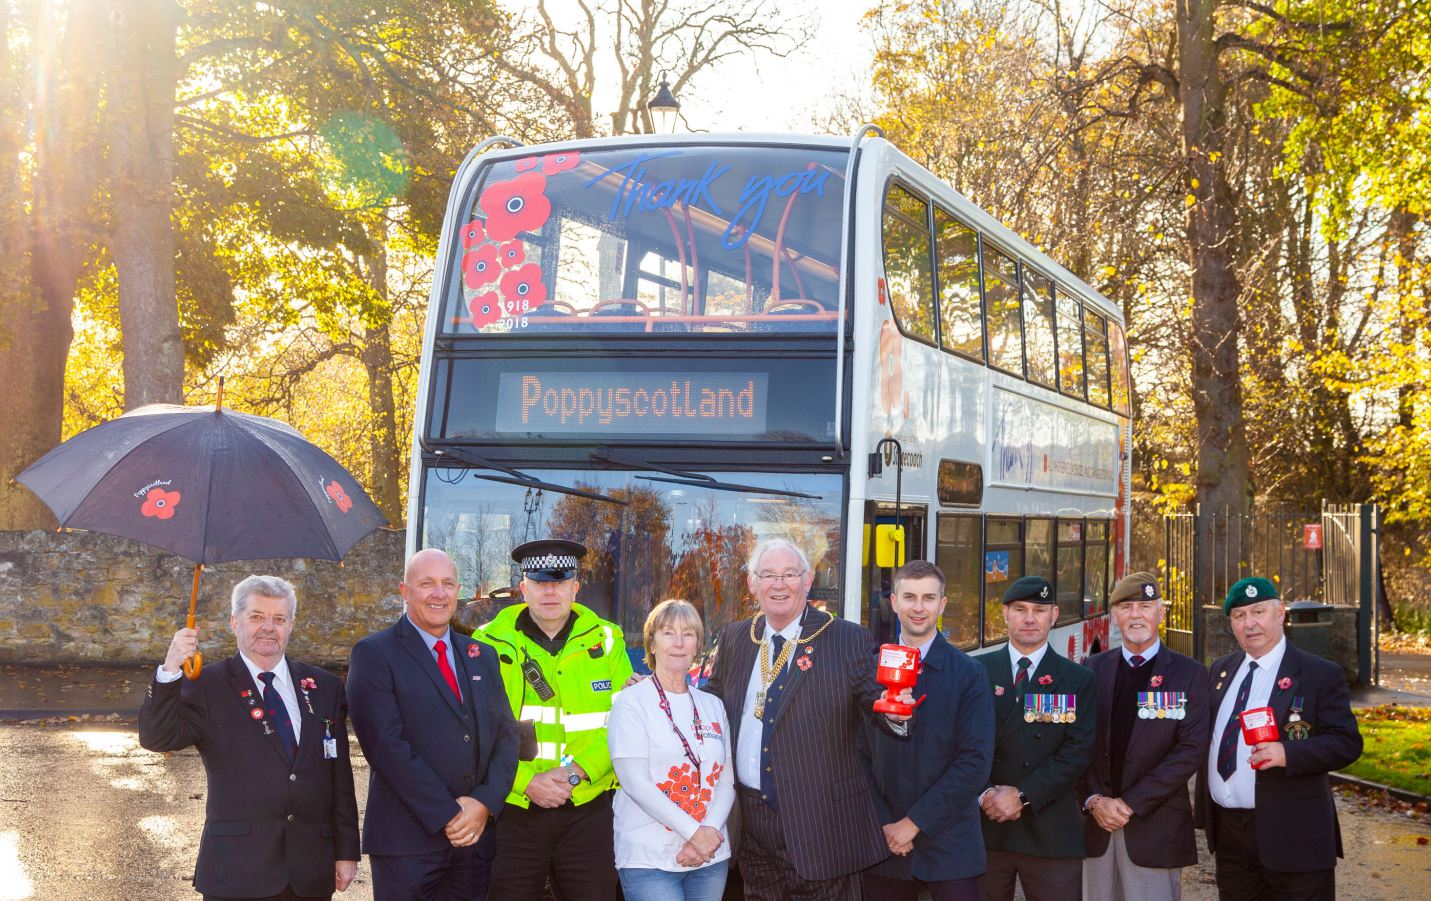 Volunteers from Poppyscotland with Lord Provost Jim Leishman beside the Poppy bus